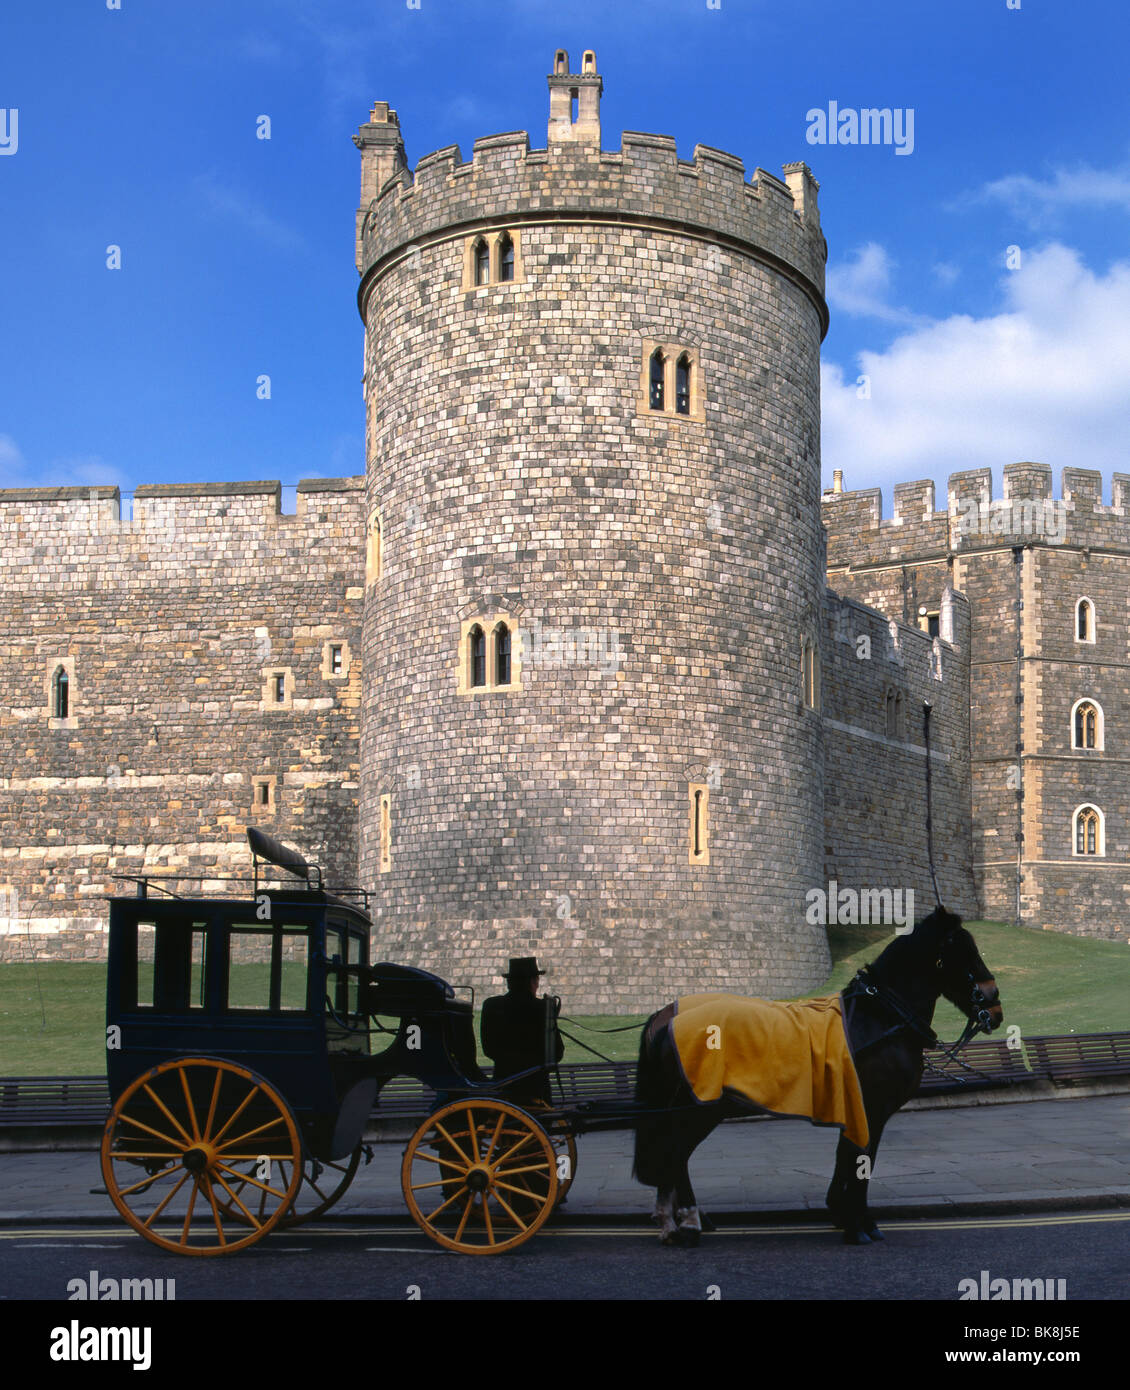 Brougham horse drawn carriage in use as a tourist experience taxi tour waiting outside Windsor Castle Windsor Berkshire - Stock Image